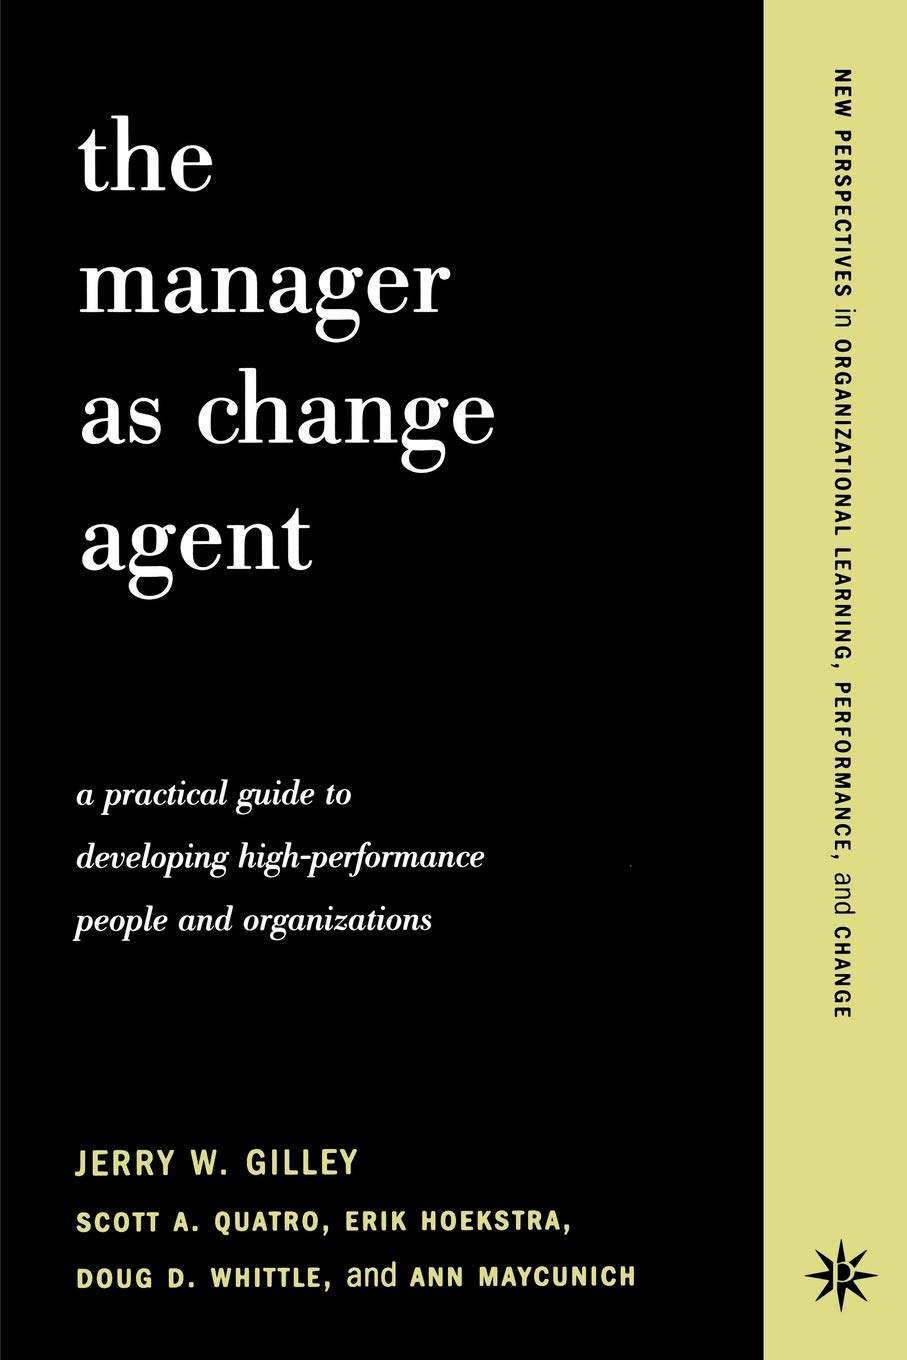 Image OfThe Manager As Change Agent: A Practical Guide To Developing High-performance Individuals And Organizations (New Perspecti...